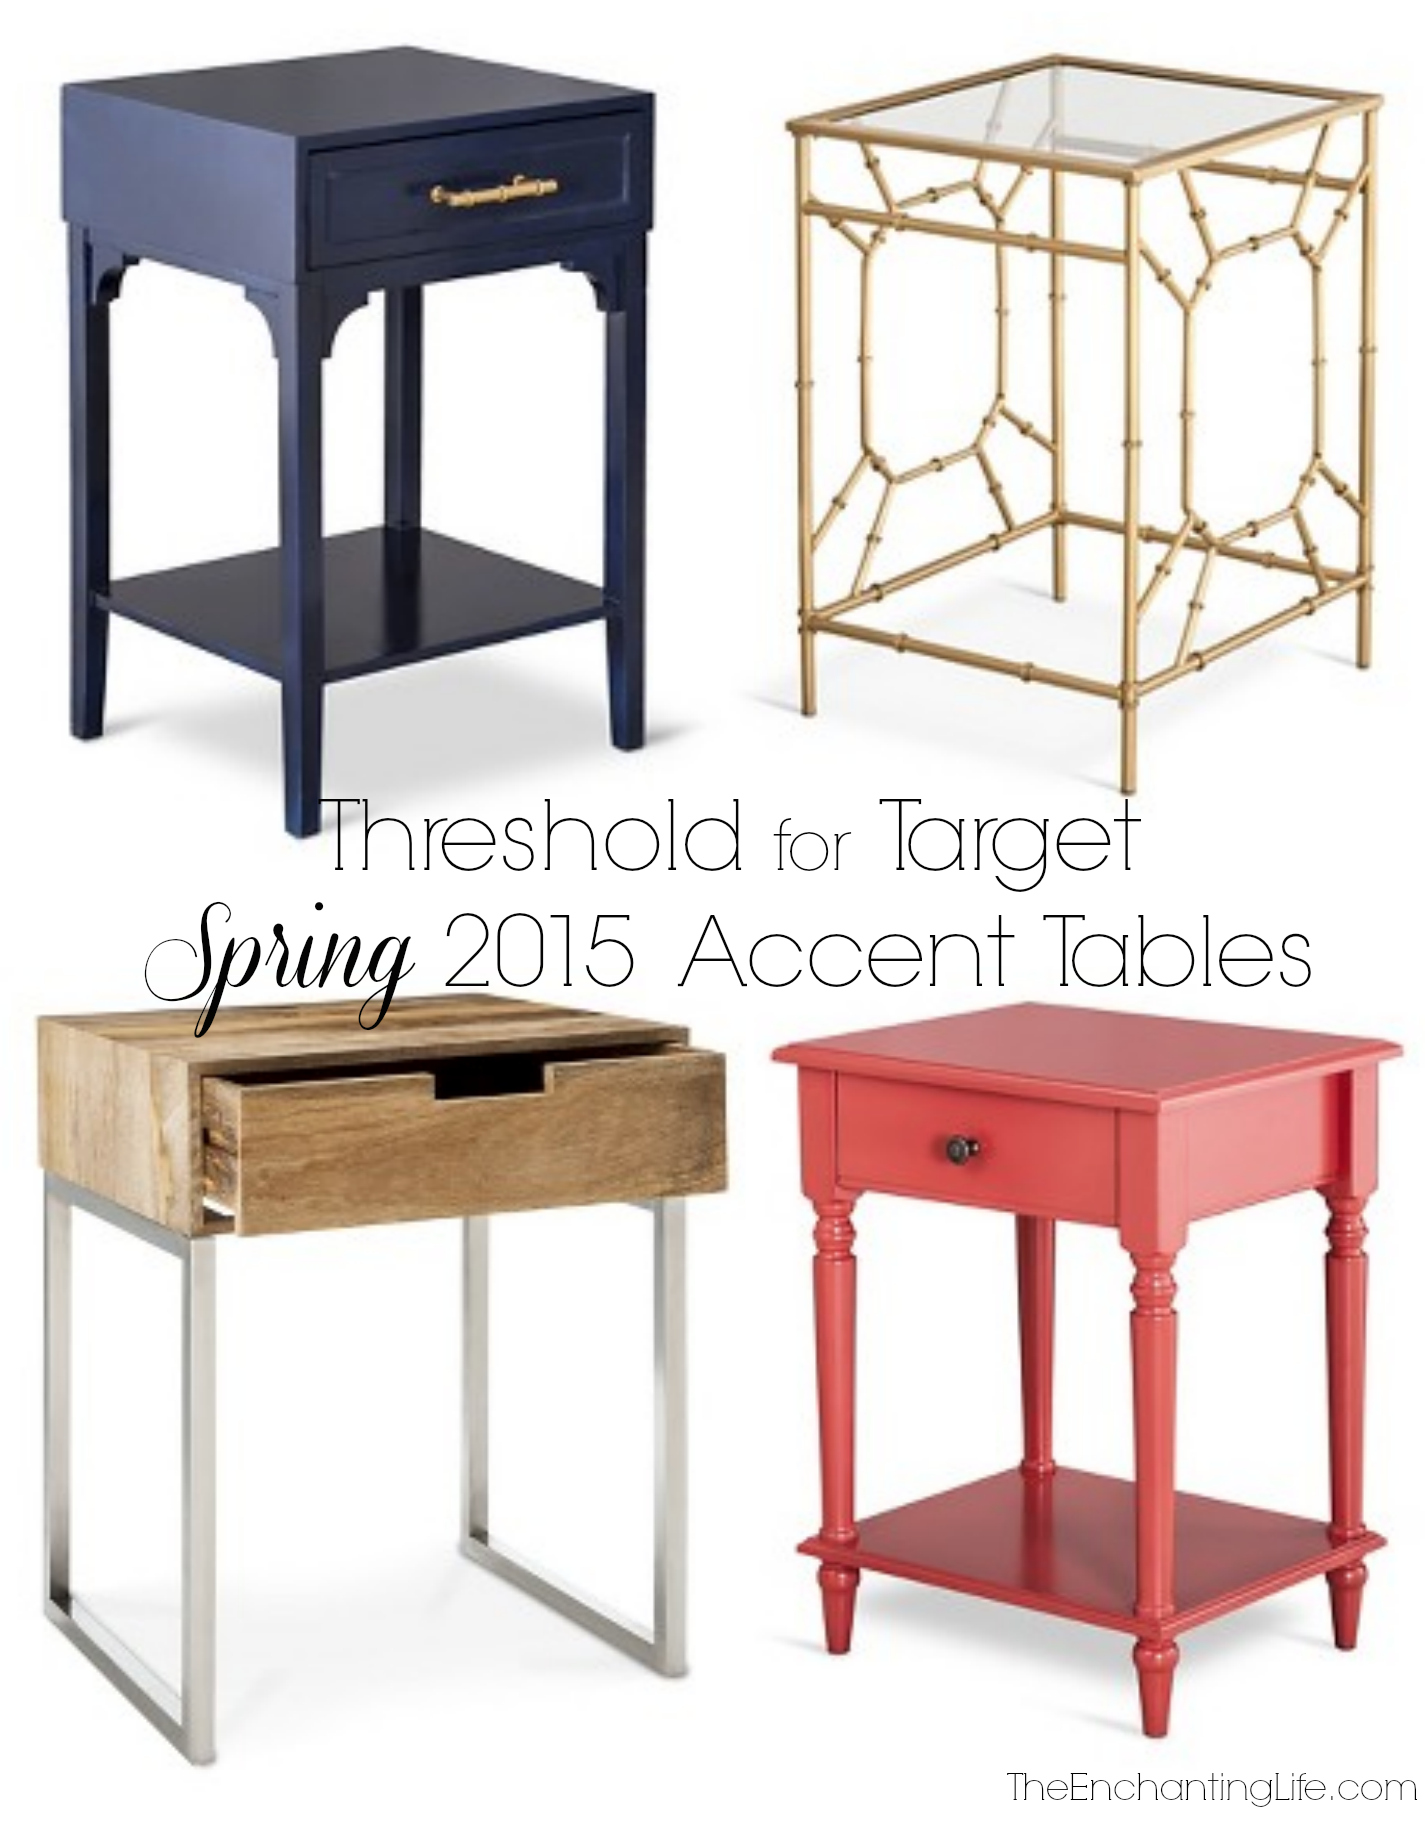 blue end table target accent tables threshold for spring hafley thresholds home collection the enchanting life small with drawer white round outdoor tablecloth hairpin legs